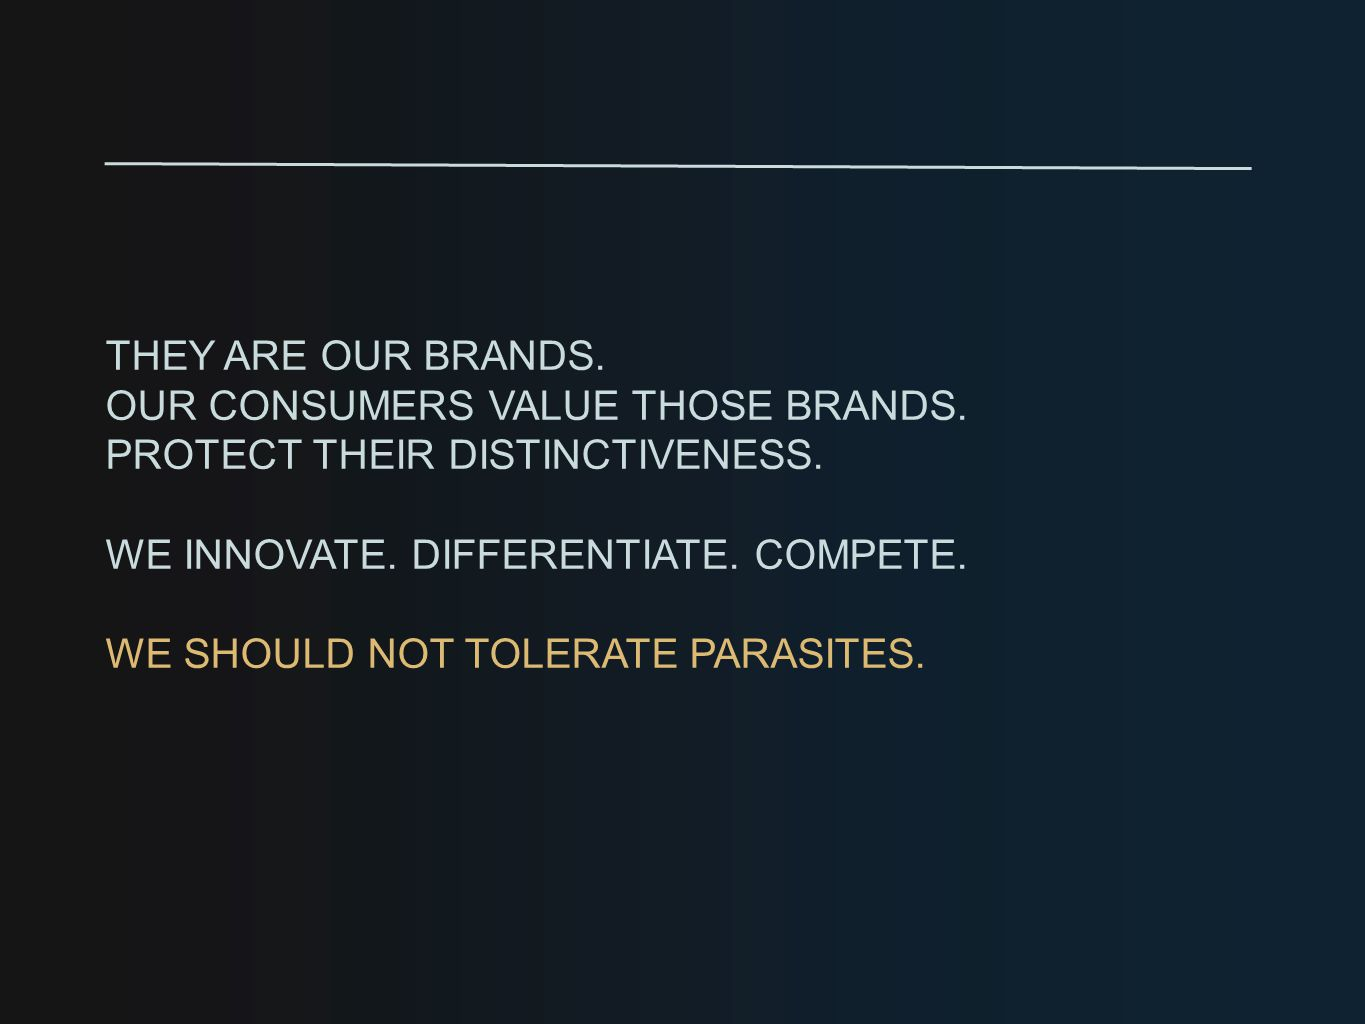 THEY ARE OUR BRANDS. OUR CONSUMERS VALUE THOSE BRANDS.